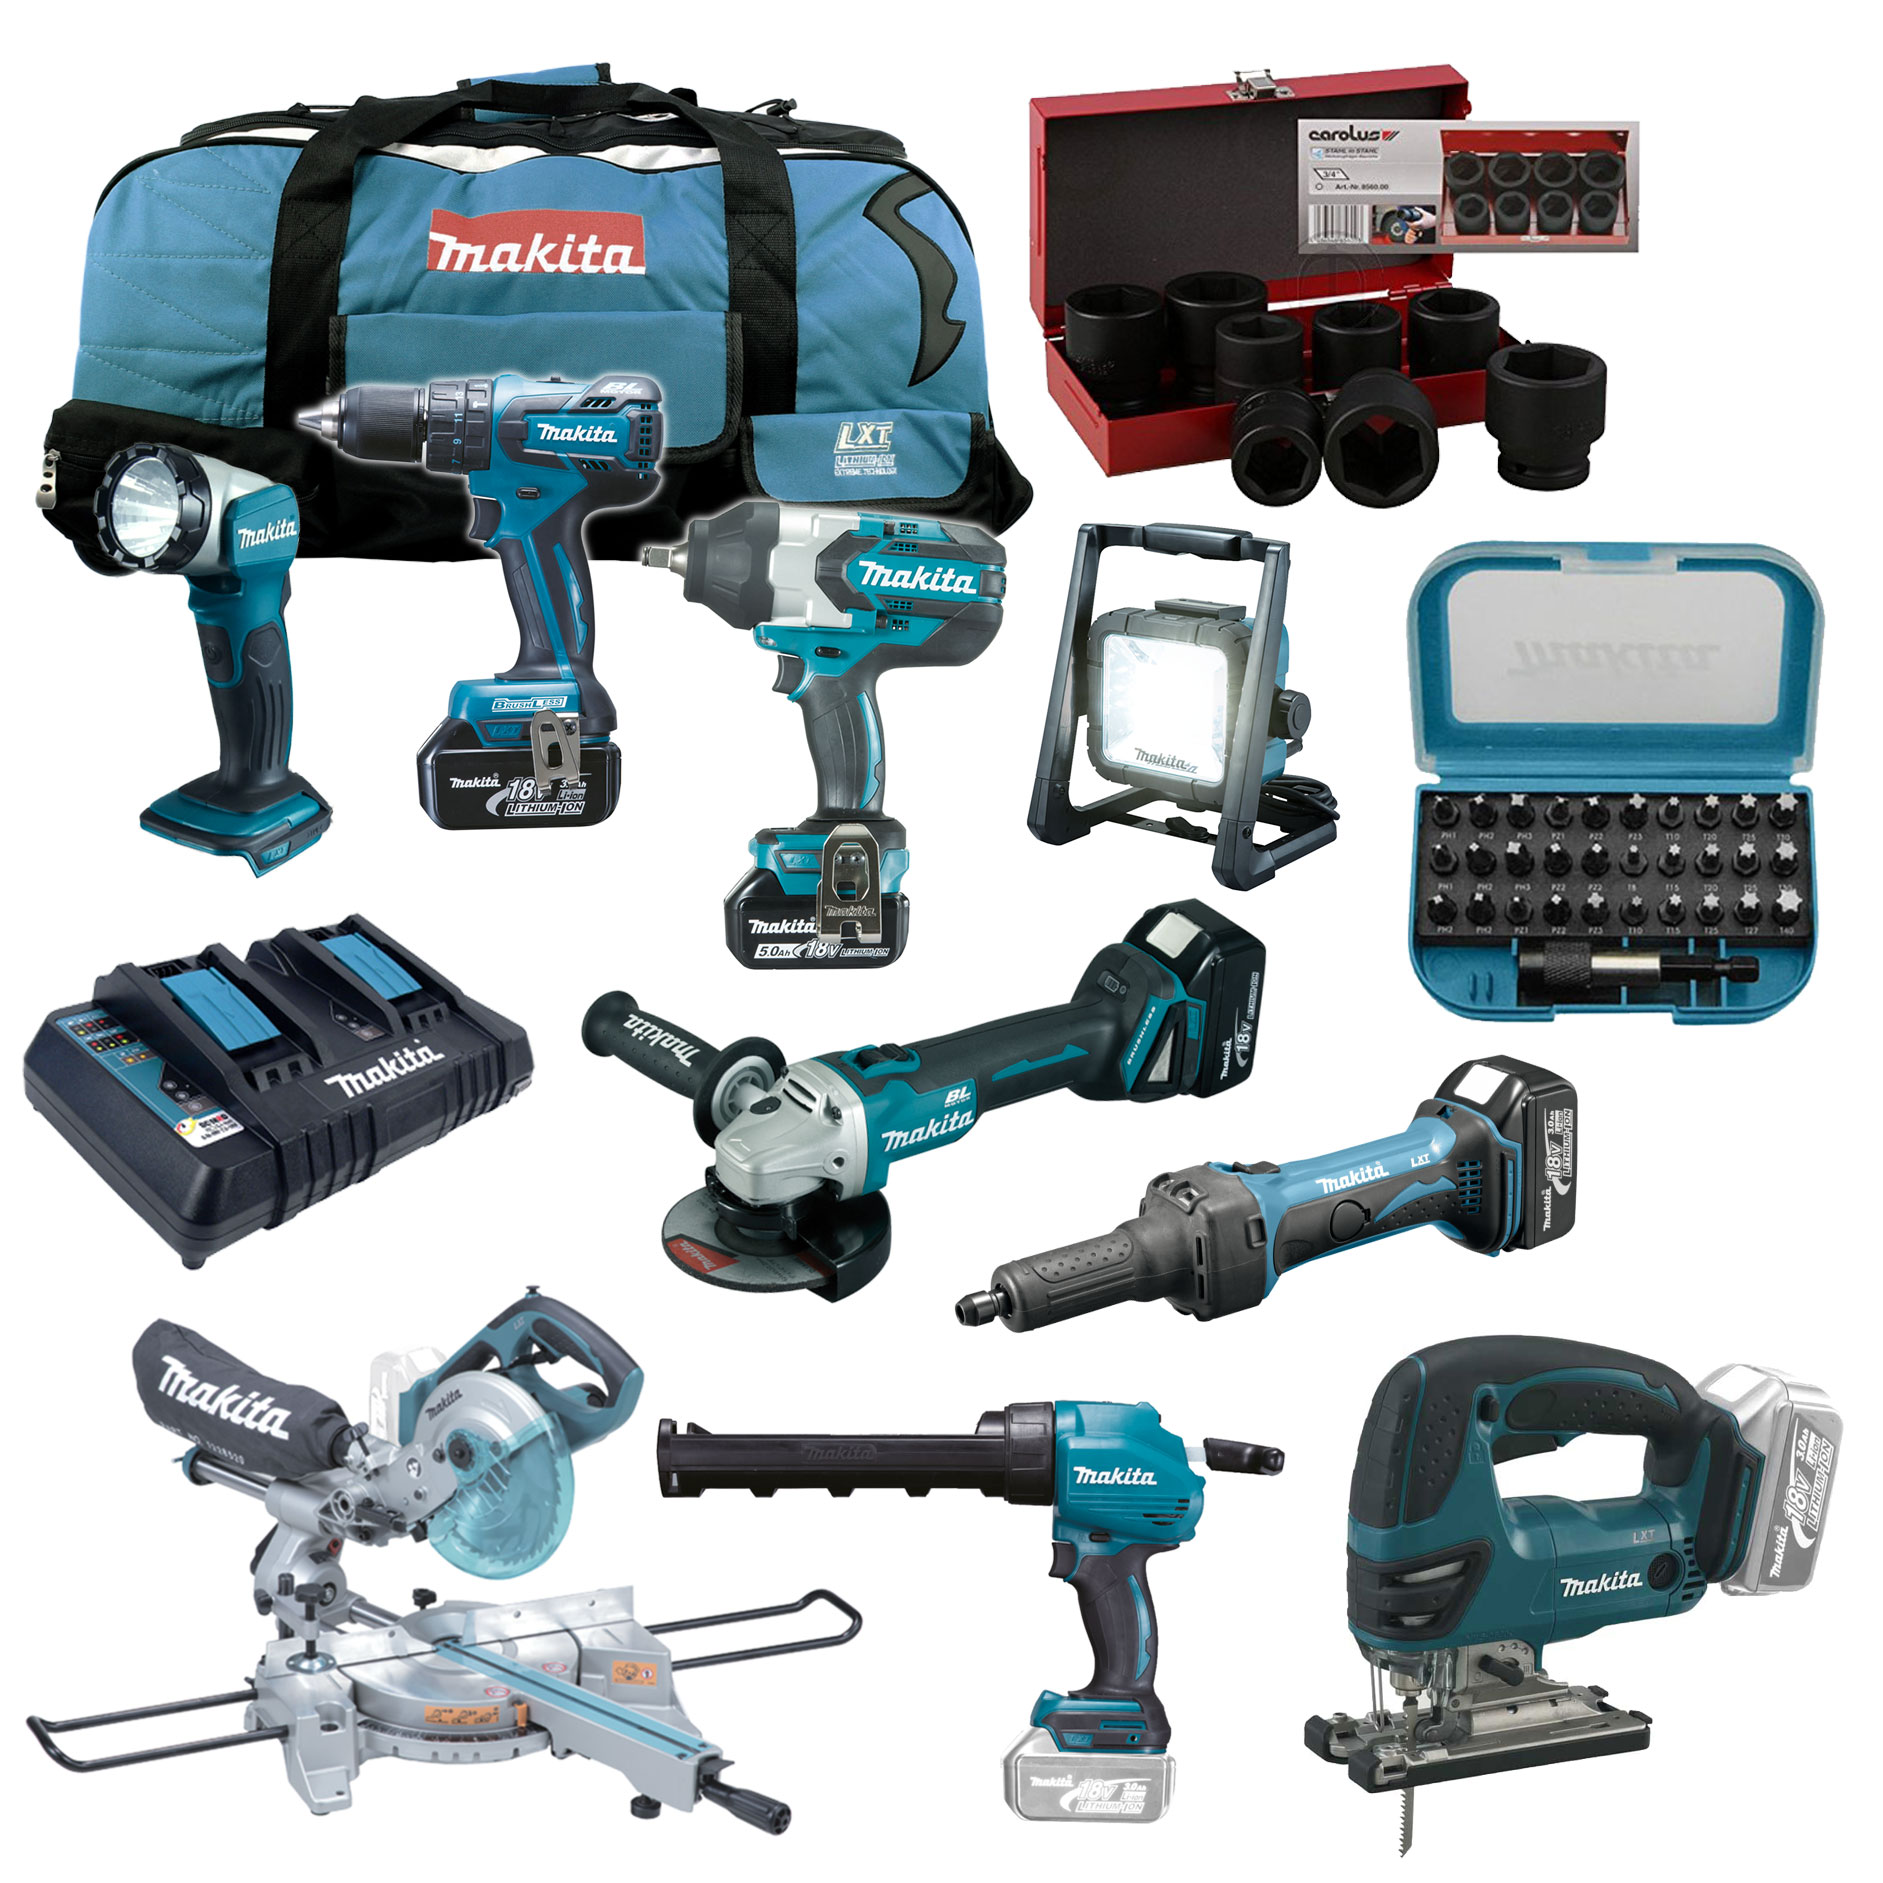 makita 18v akku elektro werkzeug set solas safety of life. Black Bedroom Furniture Sets. Home Design Ideas